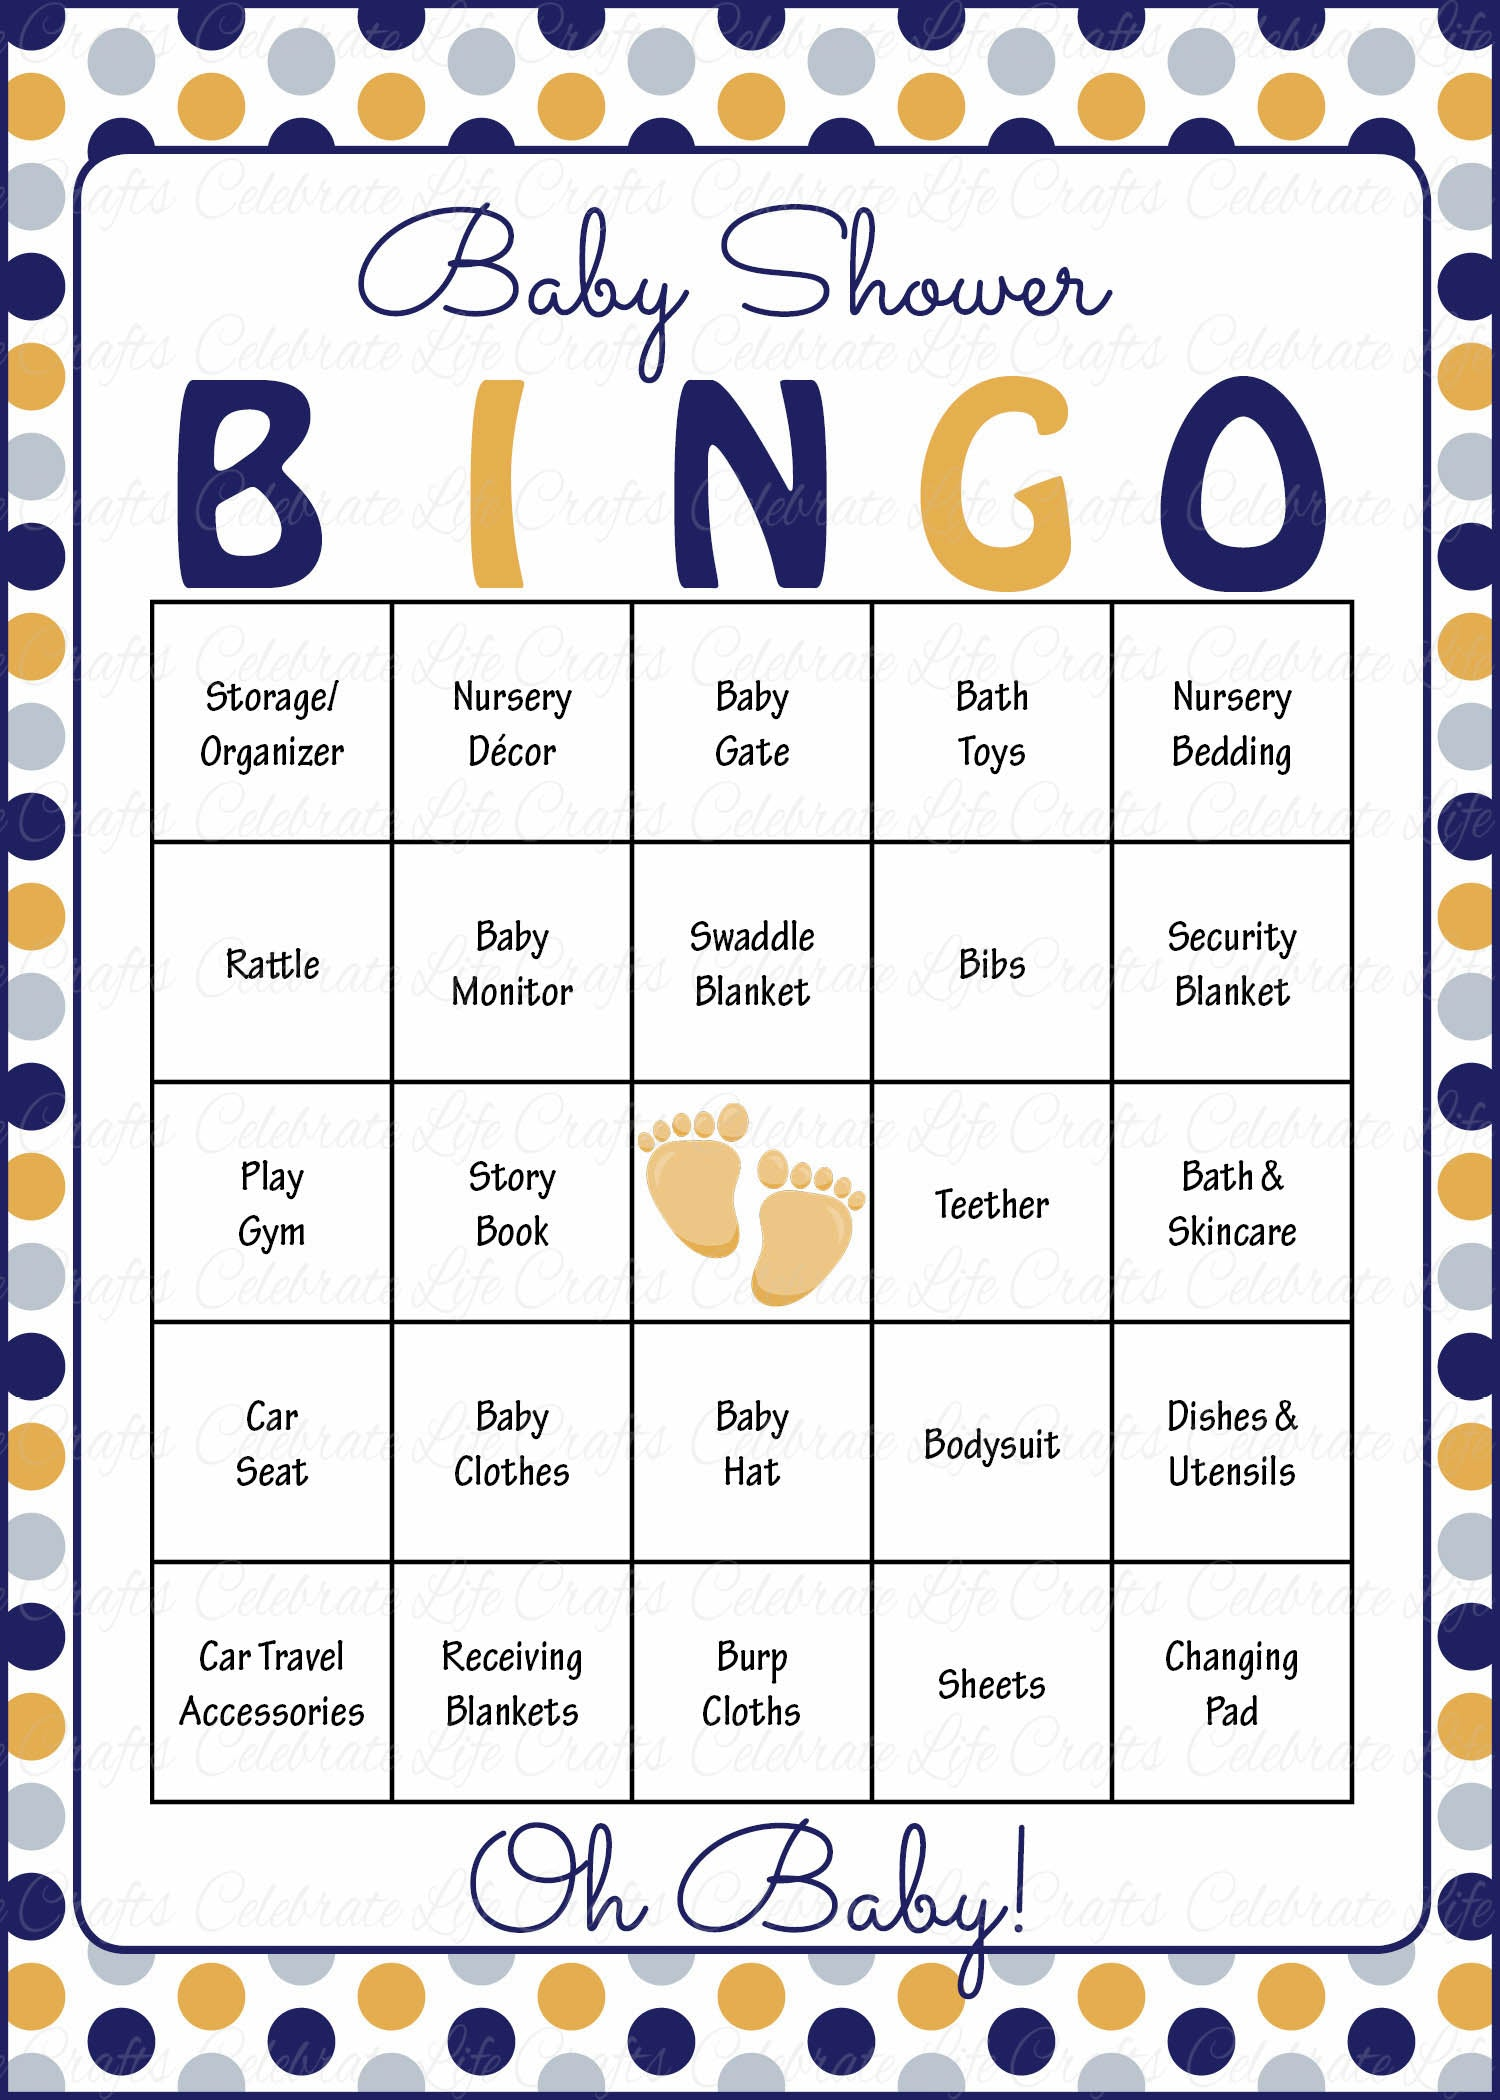 photo relating to Musical Bingo Cards Printable identified as Oh Youngster! Shower Activity Down load for Boy Little one Bingo